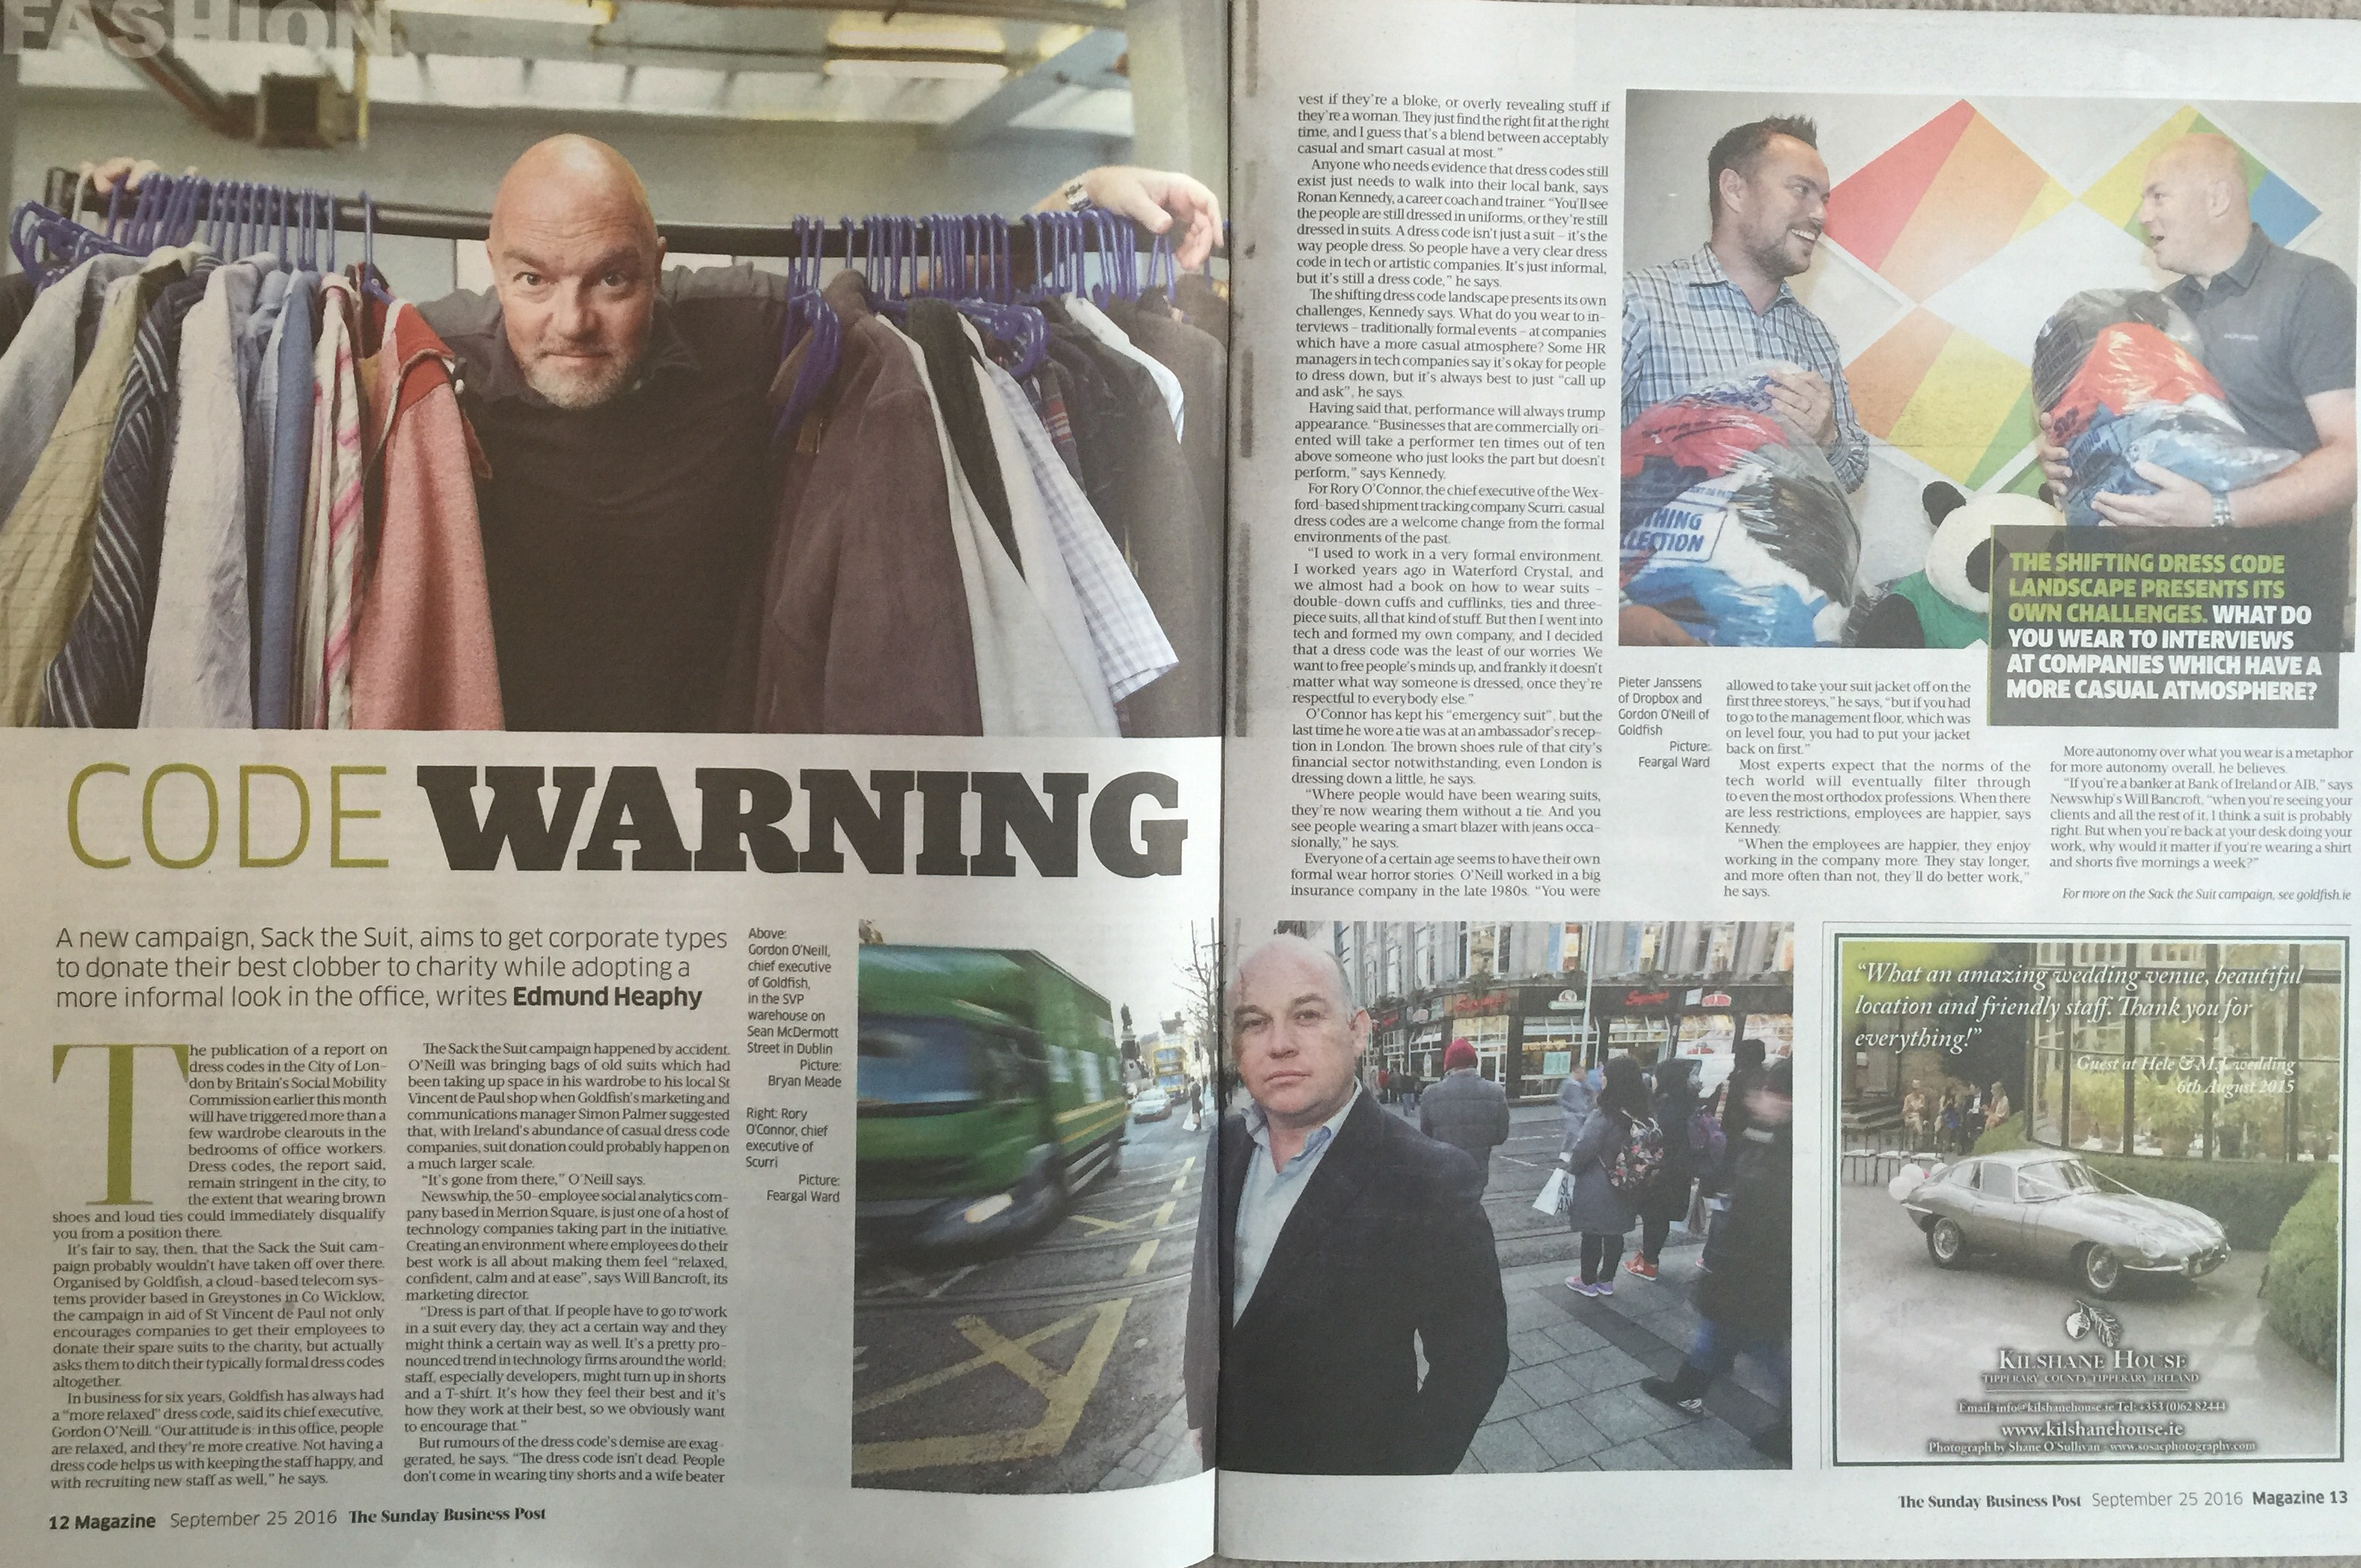 The Sunday Business Post: CODE WARNING.